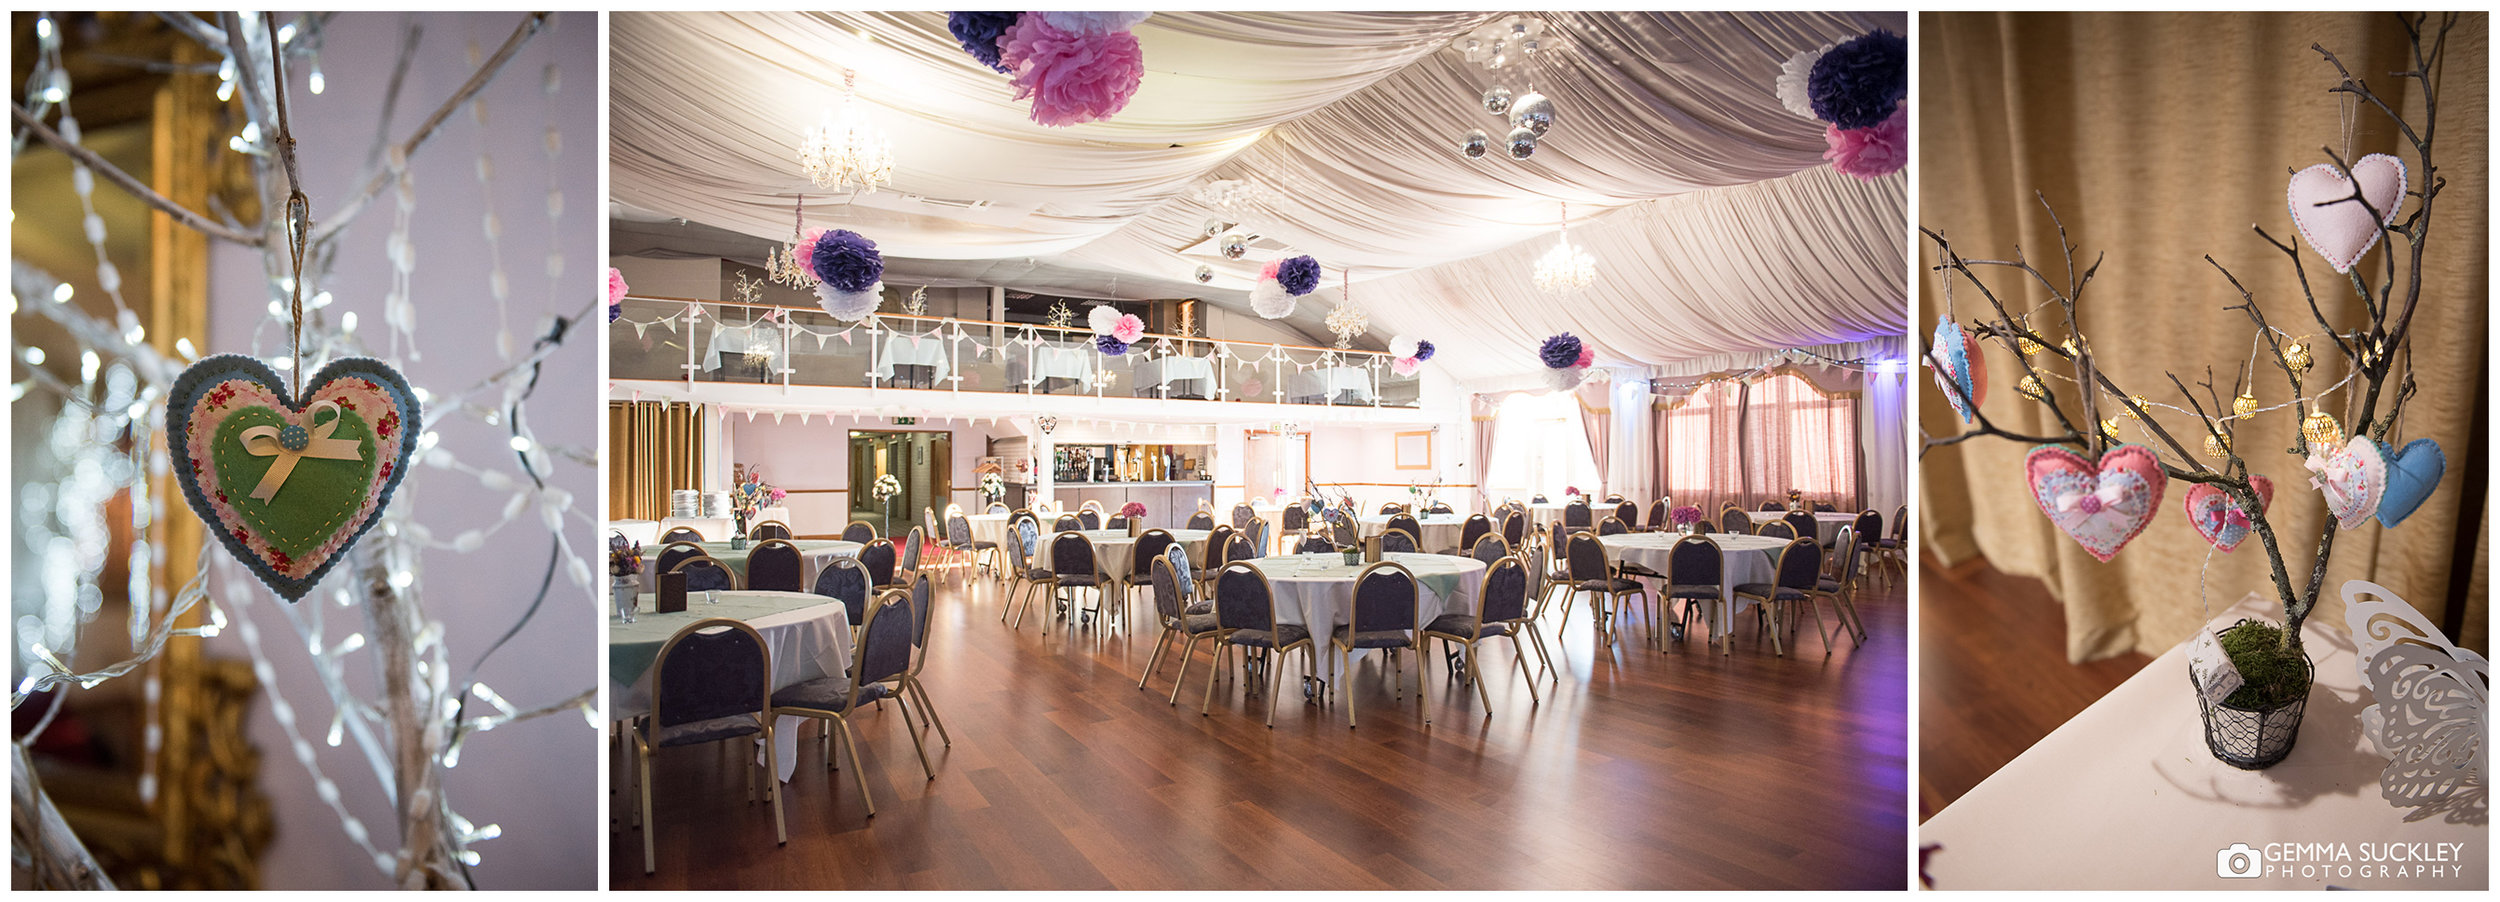 wedding-reception-at-rendevous-skipton.jpg